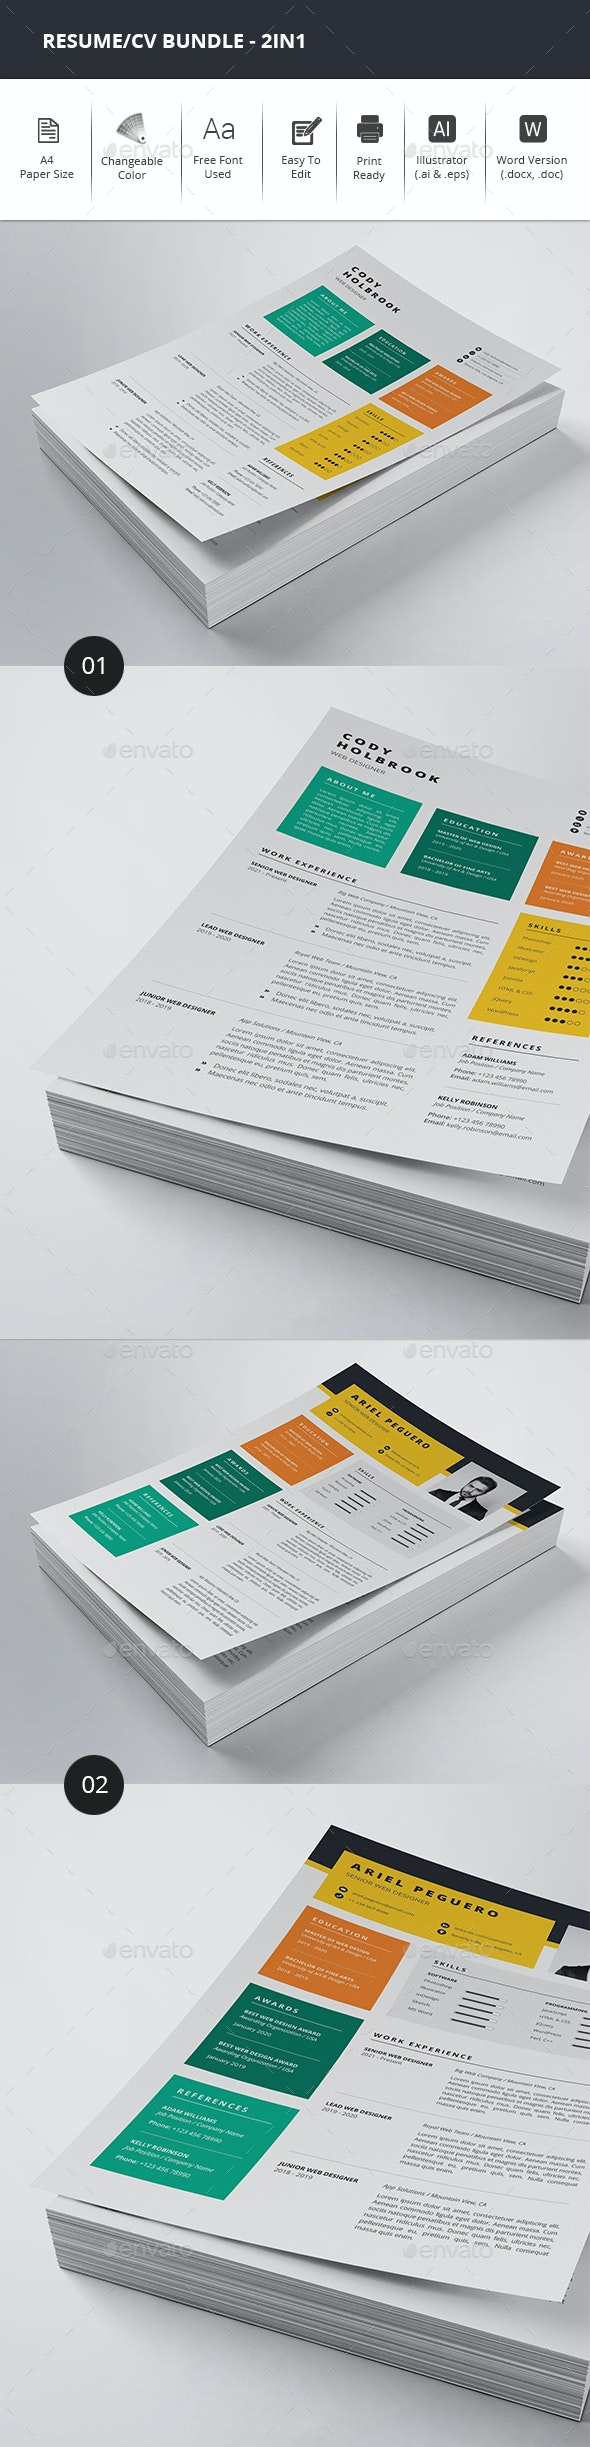 Colorful Resume/CV Bundle - 2in1 - Resumes Stationery